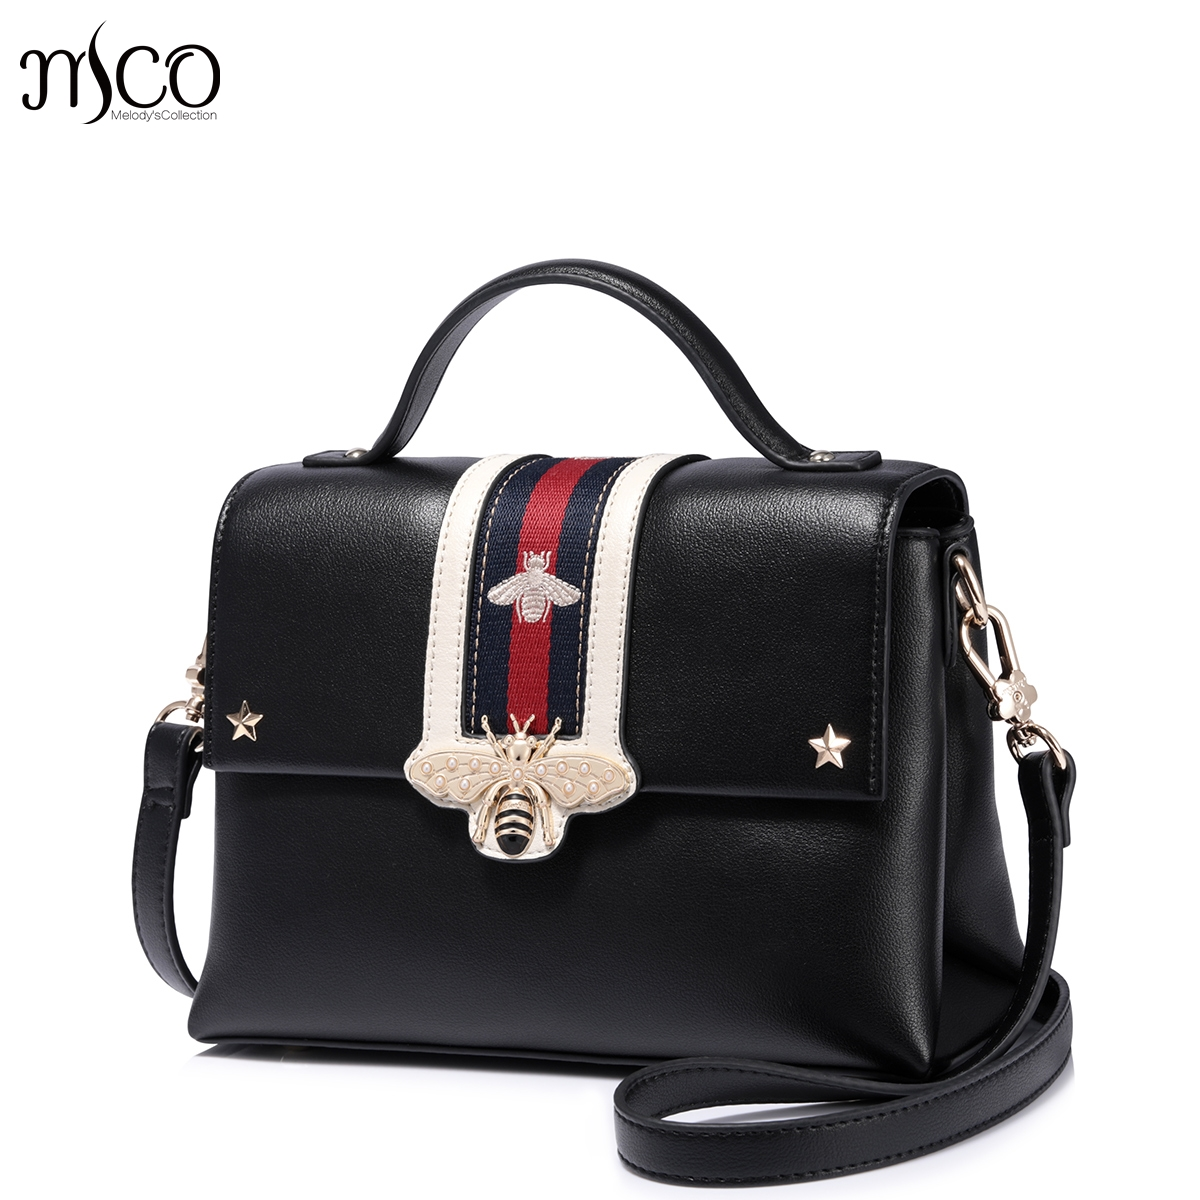 Just star designer brand luxury Insects handbags women Shoulder bags sac a main femme clutch crossbody a bag bolsas feminina handbags women trapeze bolsas femininas sac lovely monkey pendant star sequins embroidery pearls bags pink black shoulder bag